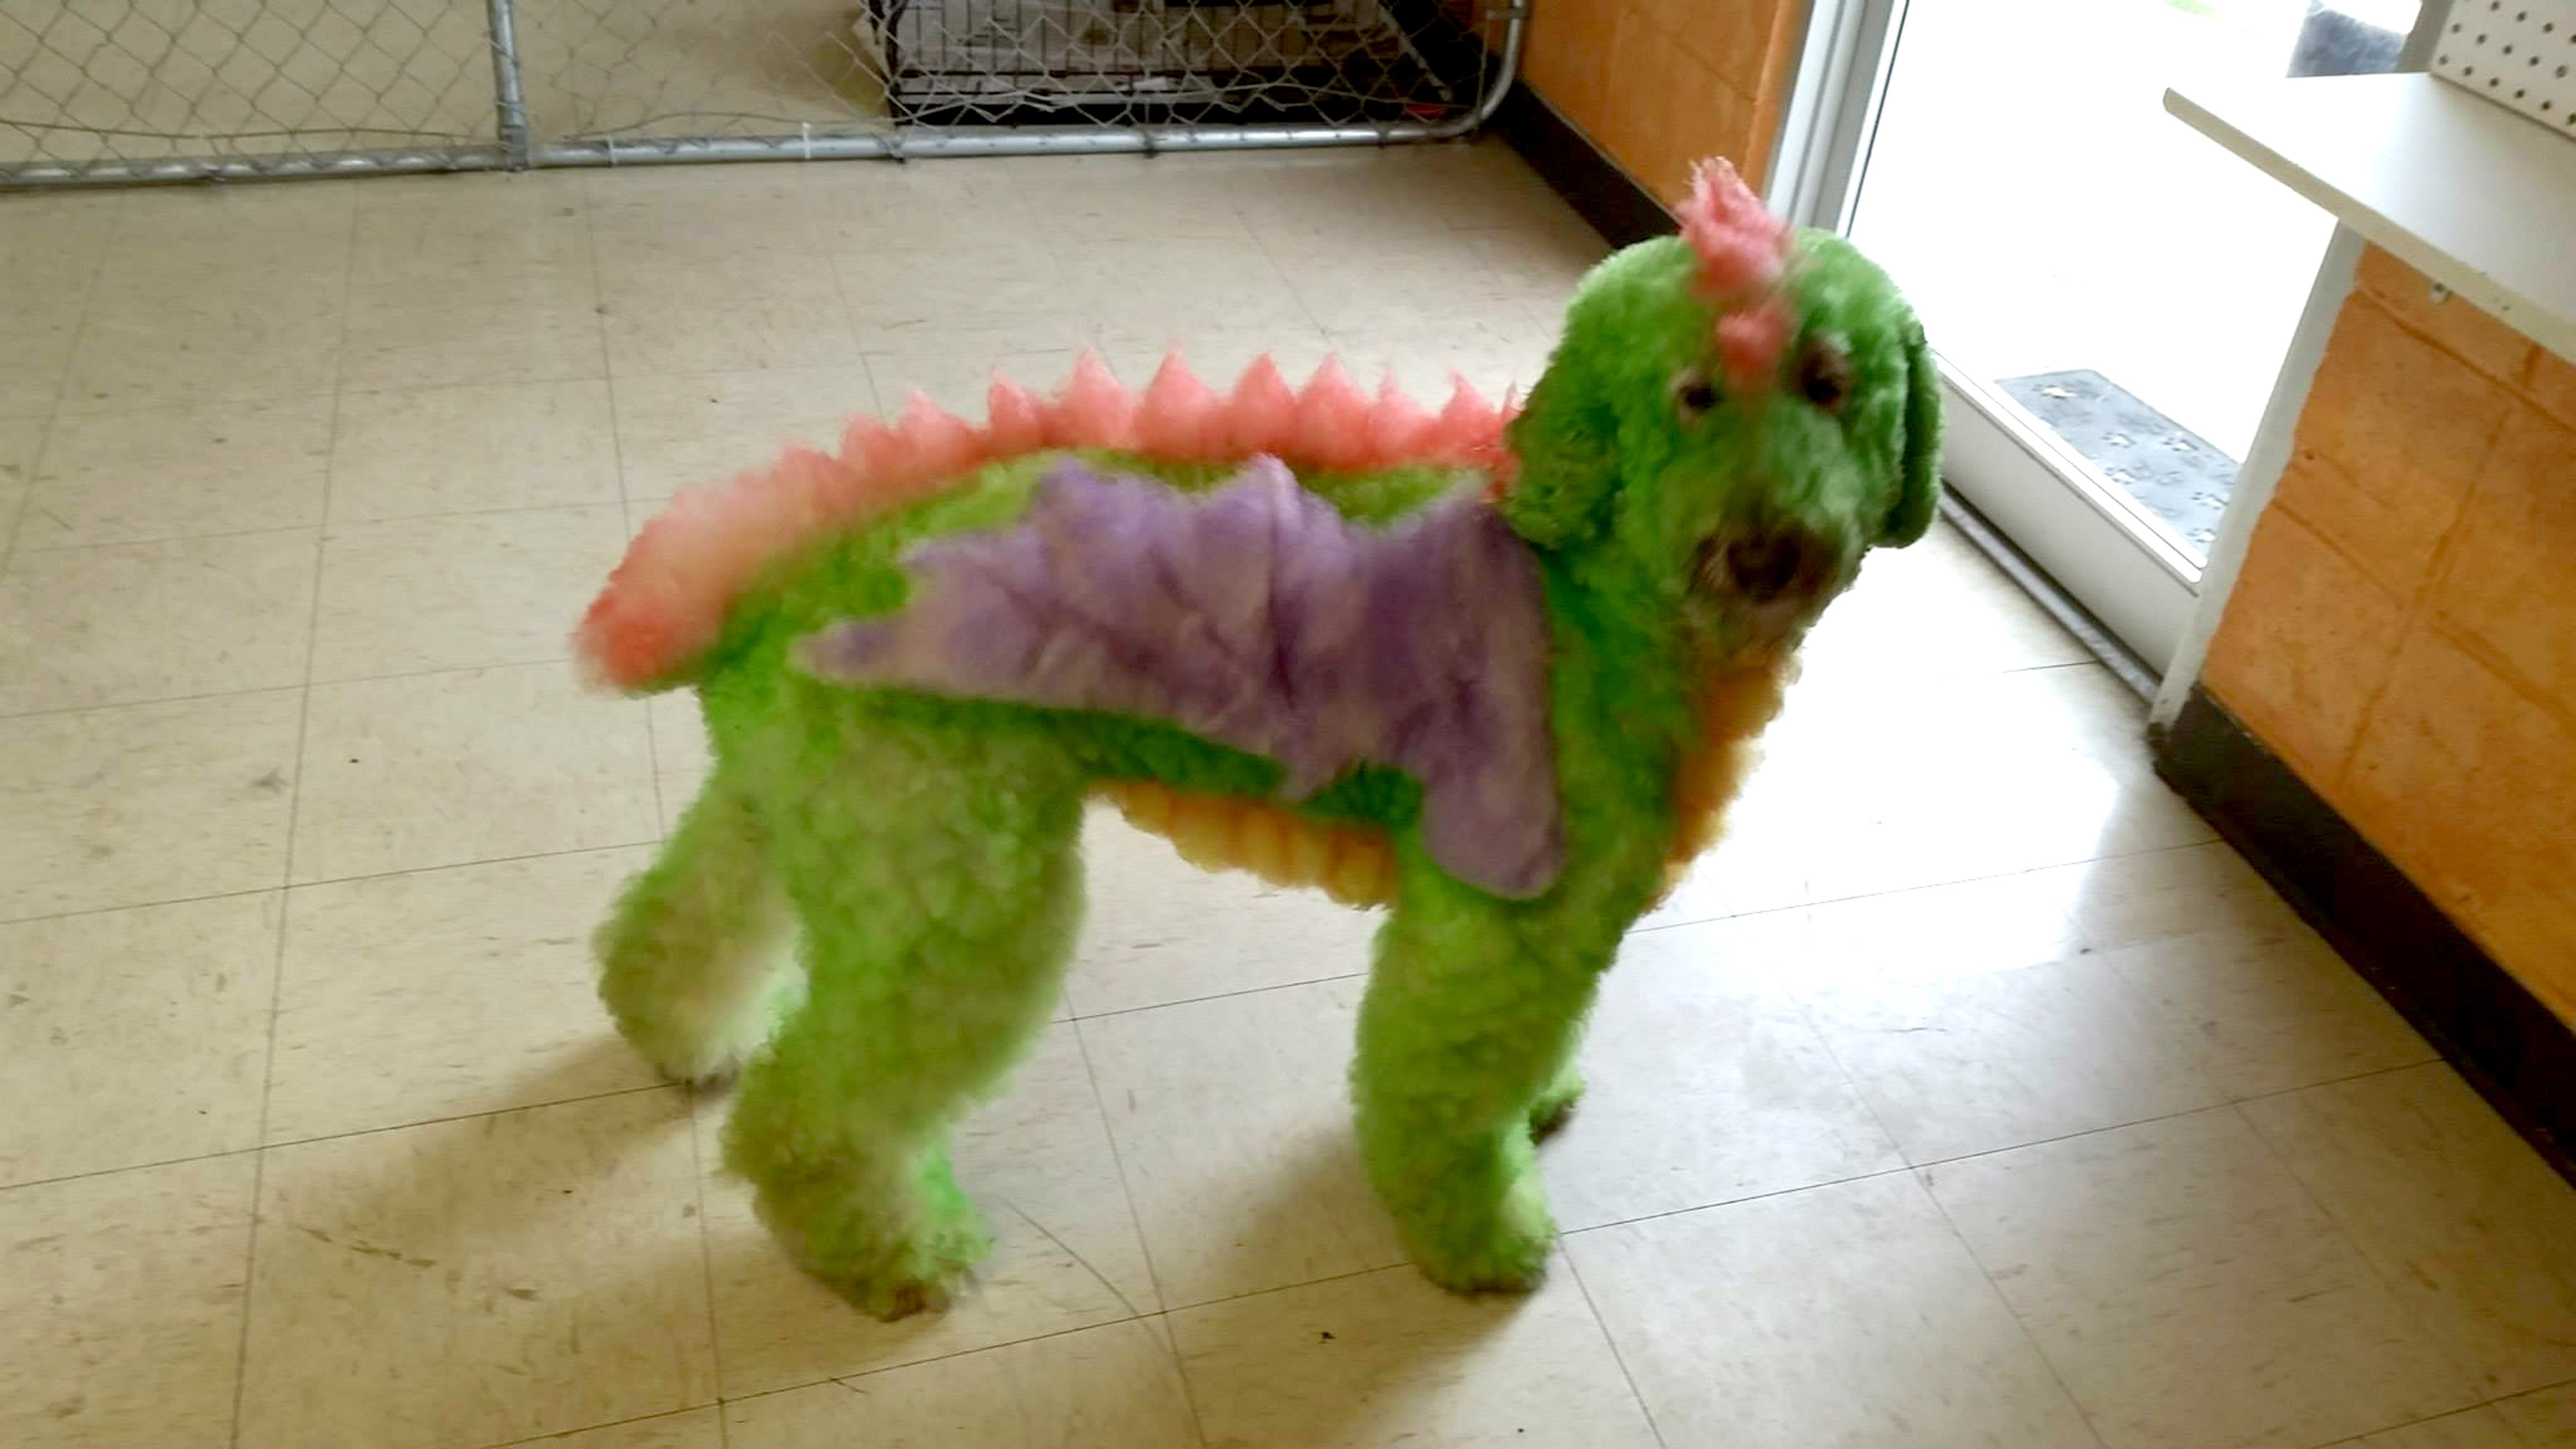 Bijou has previously been a dragon, a peacock and a horse. Credit: Caters